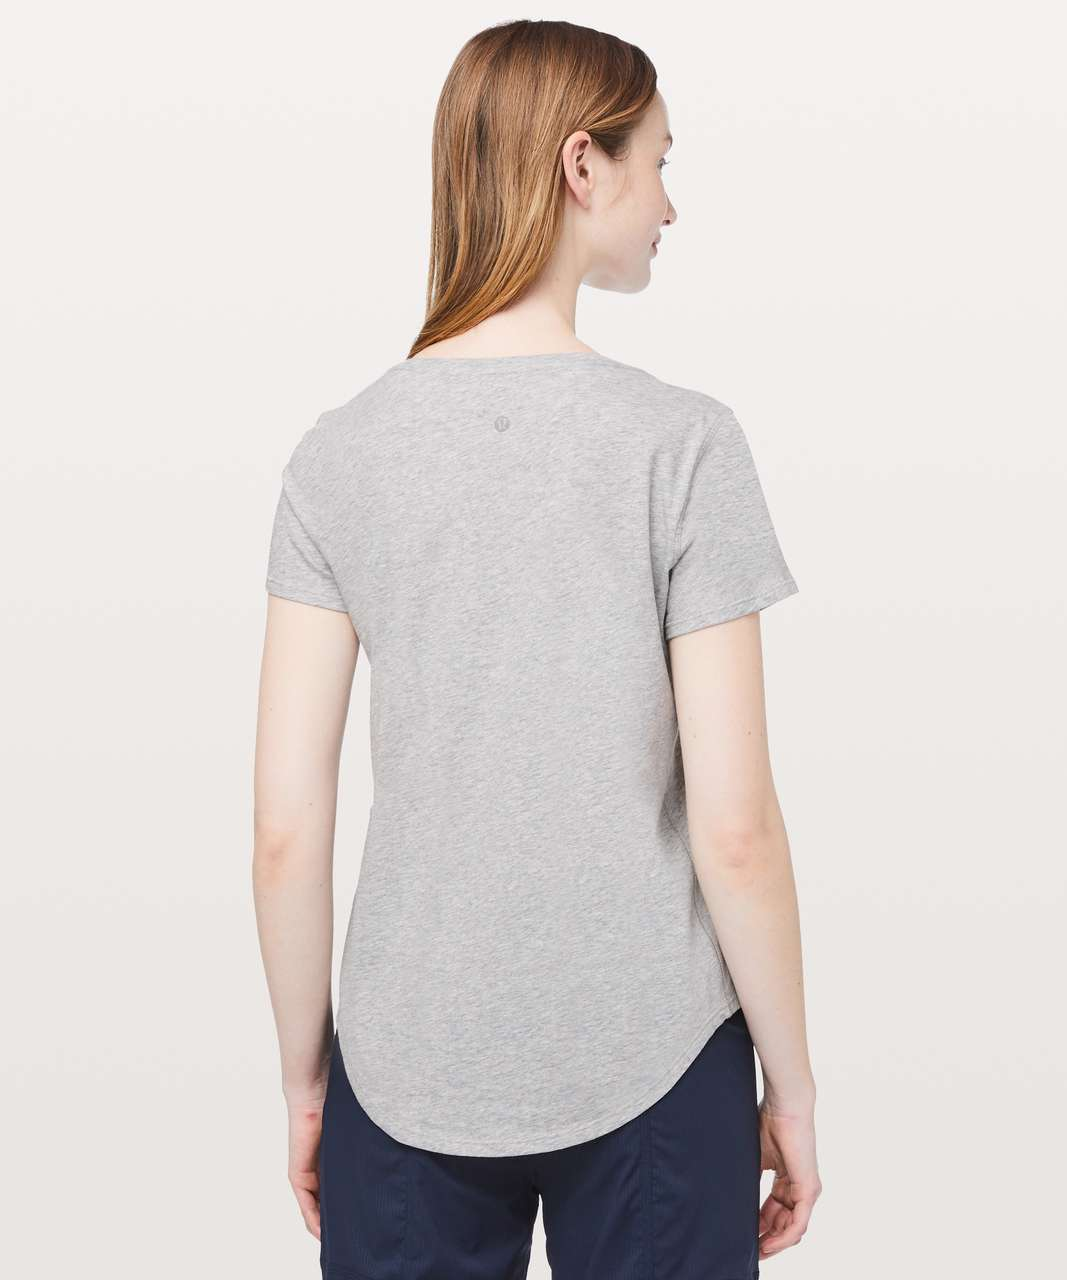 Lululemon Love Tee V - Heathered Core Light Grey (First Release)